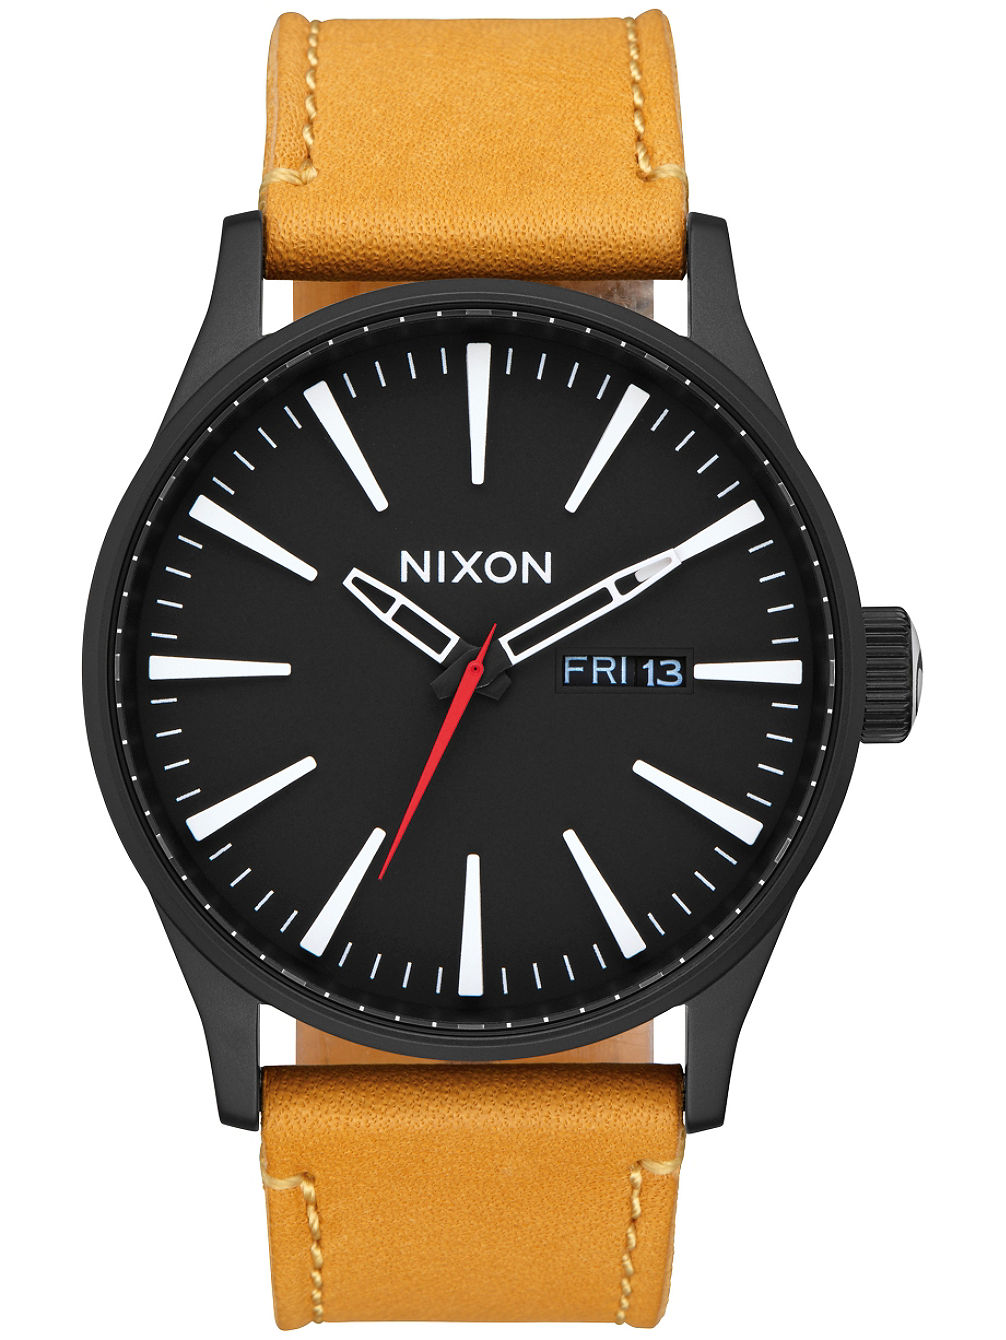 The Sentry Leather Reloj